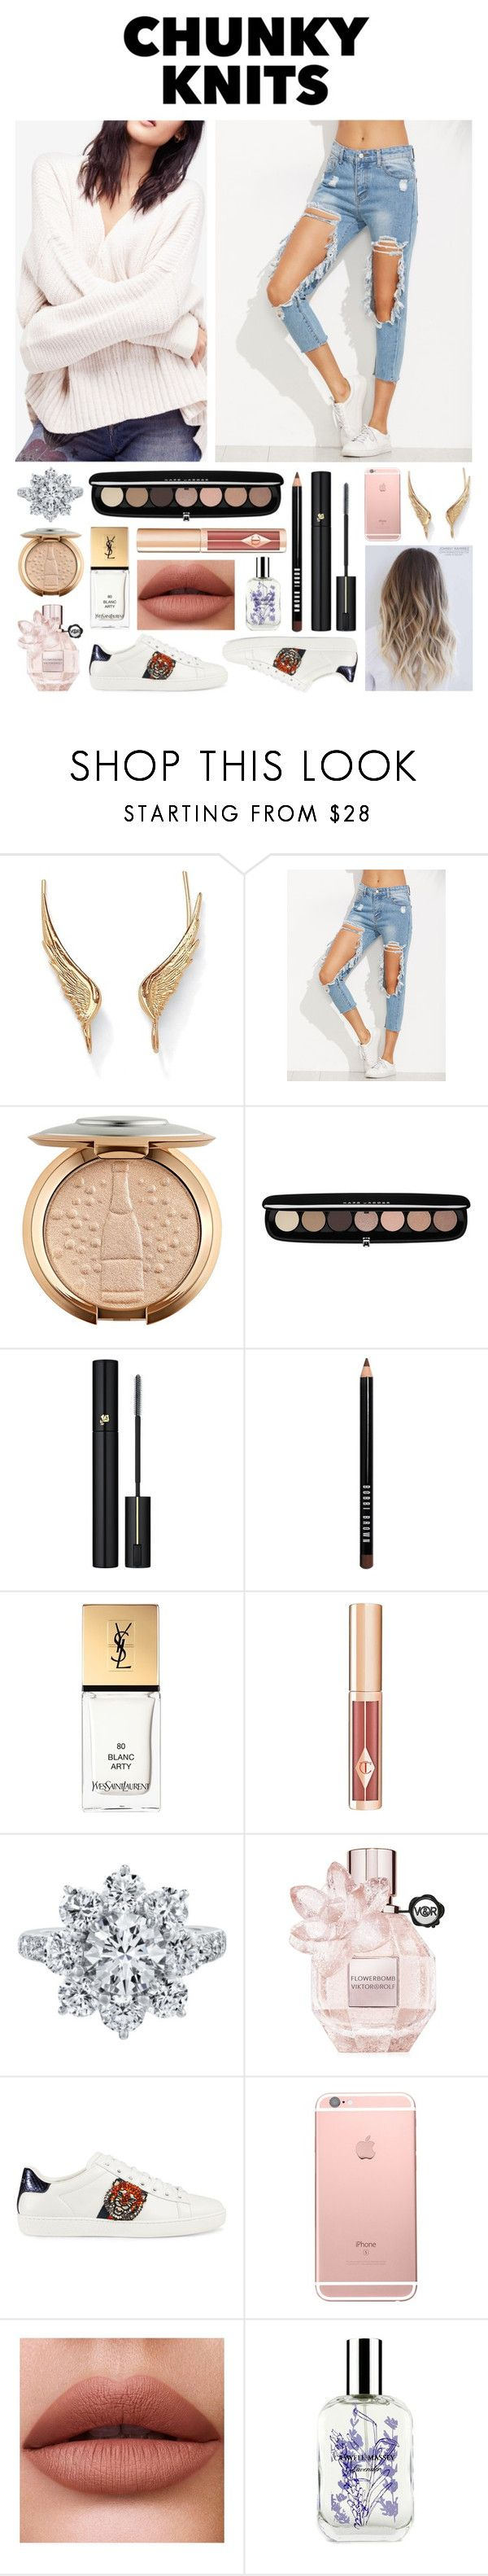 """#CHUNKYKNITS"" by princesskimdoan ❤ liked on Polyvore featuring Palm Beach Jewelry, Marc Jacobs, Lancôme, Bobbi Brown Cosmetics, Yves Saint Laurent, Harry Winston, Viktor & Rolf, Gucci and Caswell-Massey"